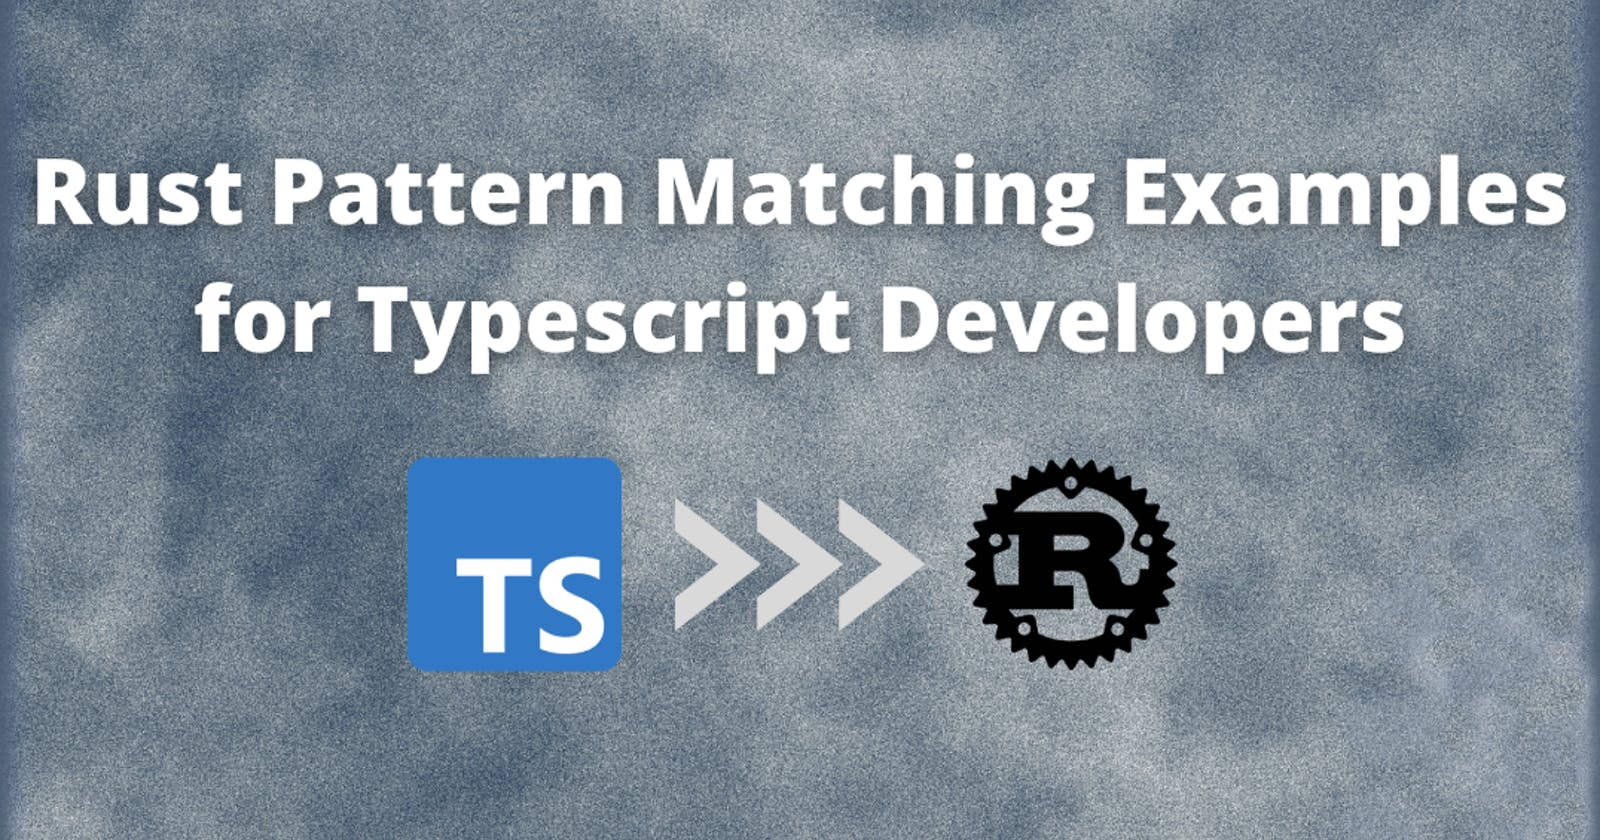 Rust Pattern Matching Examples for Typescript Developers